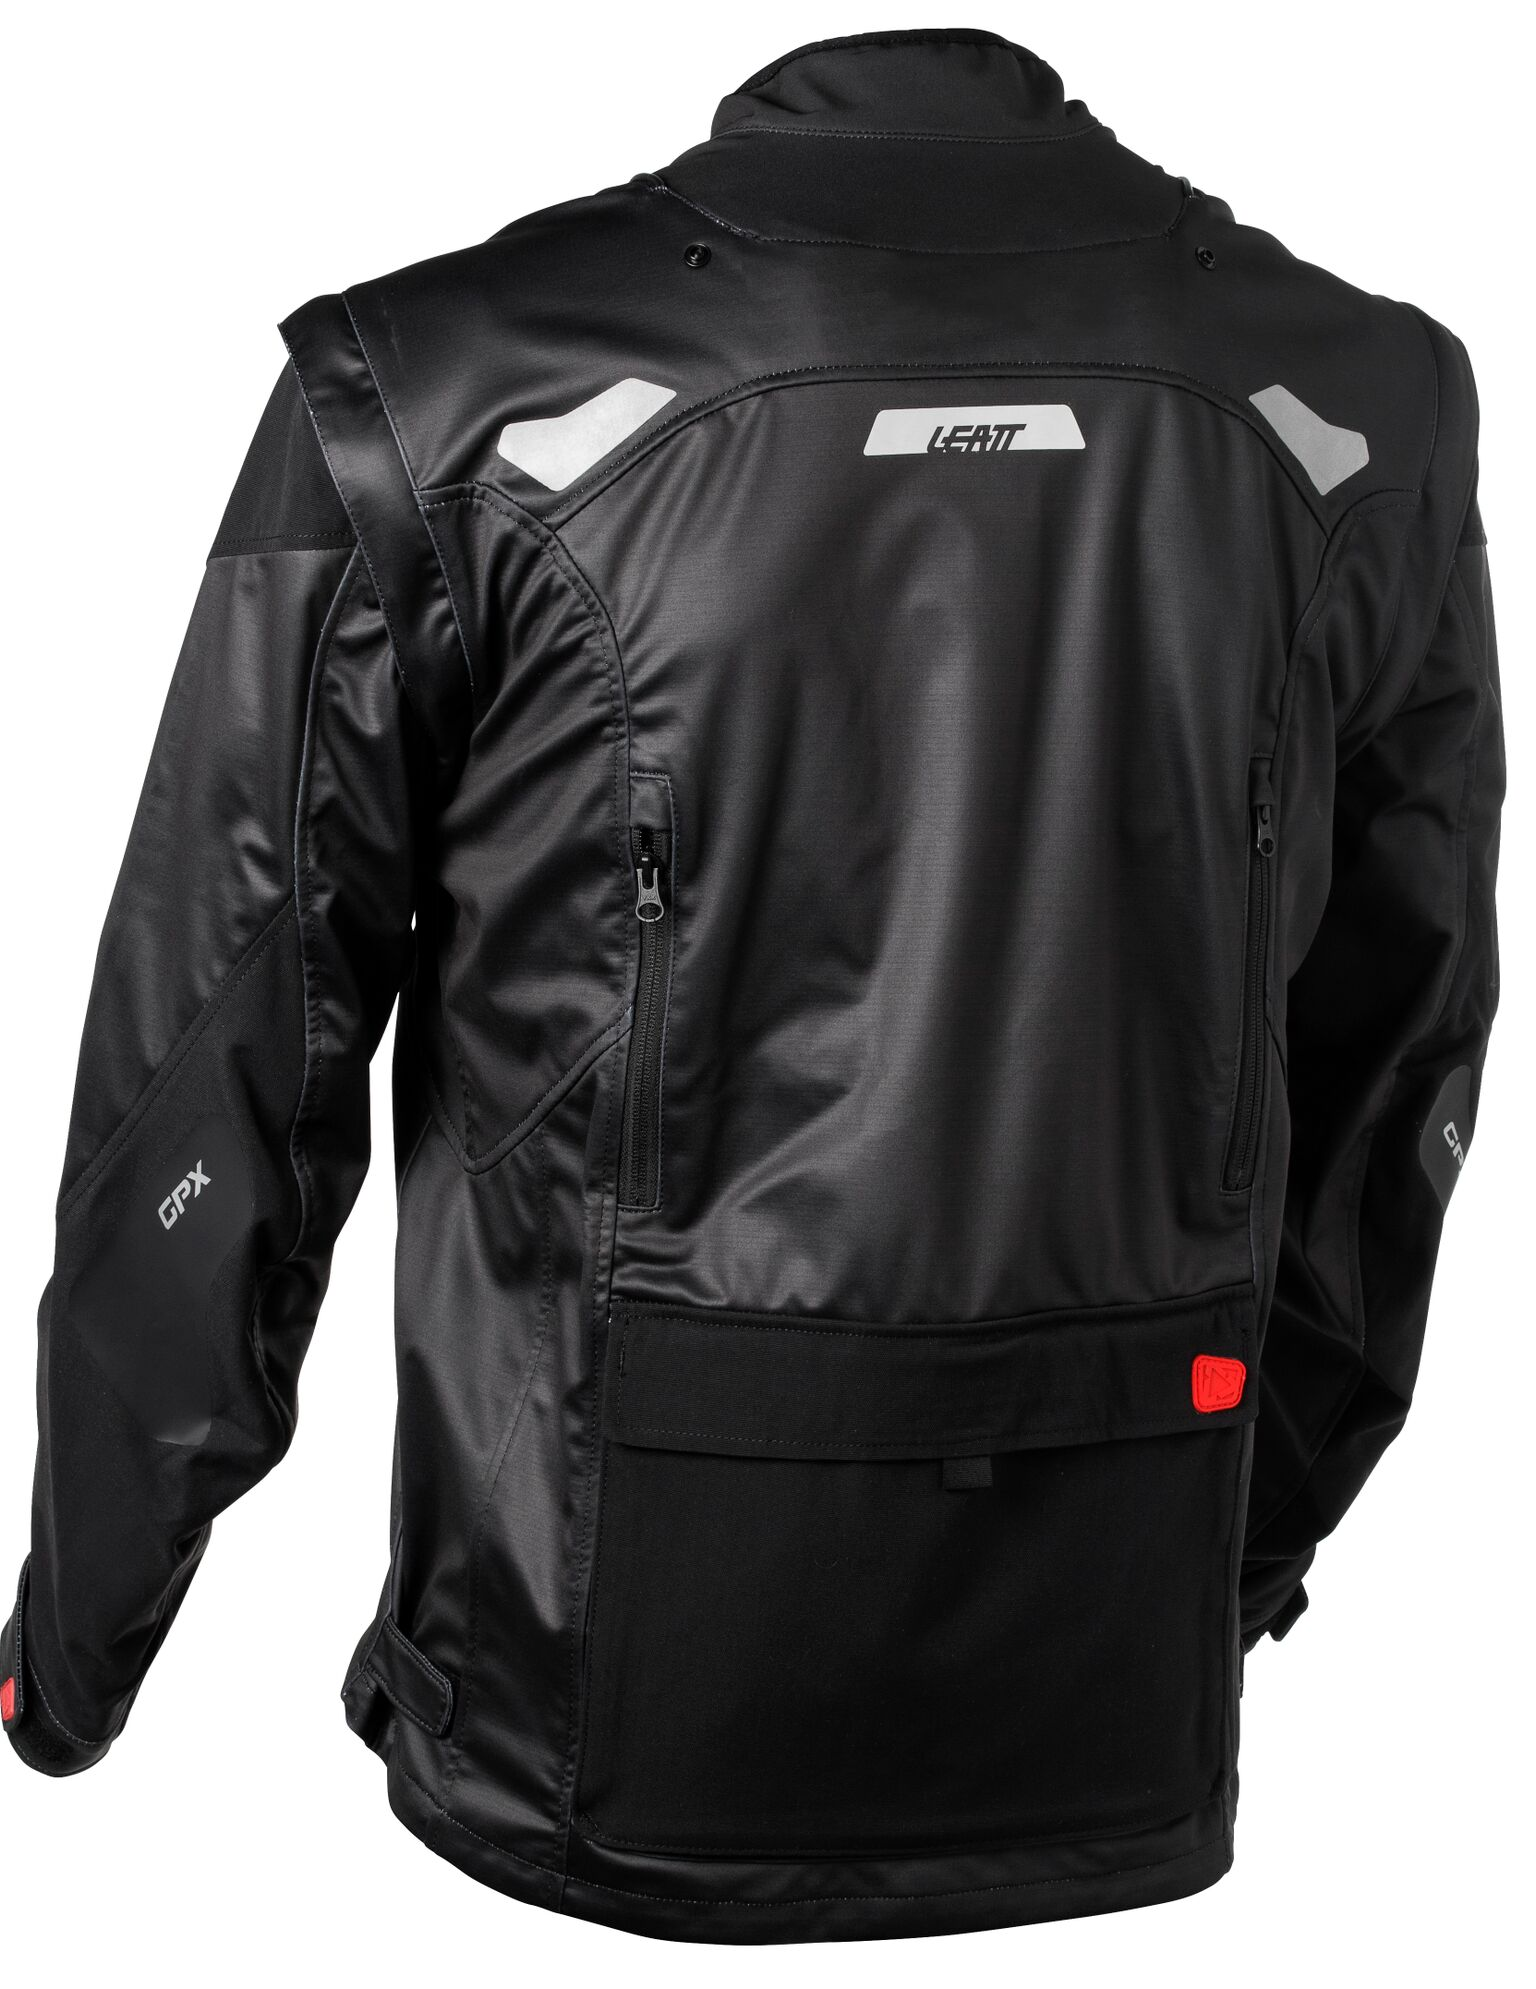 Jacket GPX 4.5 Lite Black Grey 2018_1.JPG